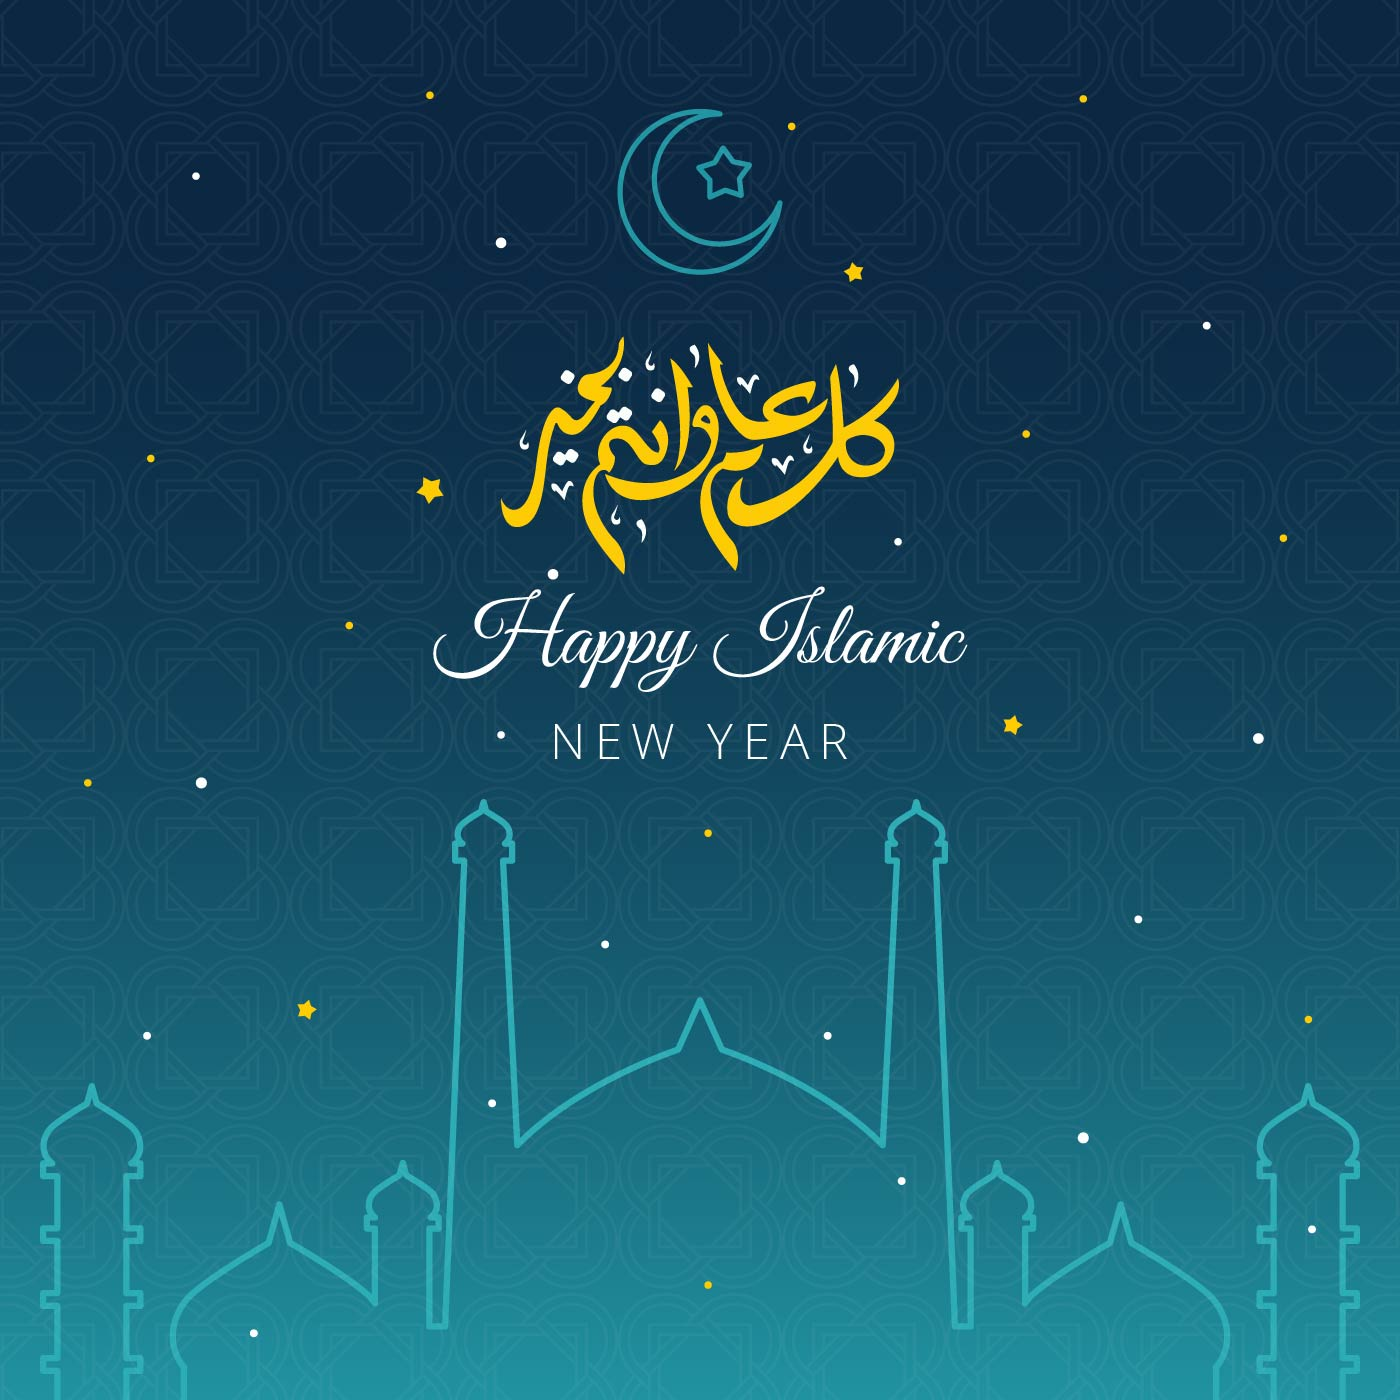 Islamic New Year Vector Background Download Free Vector Art Stock